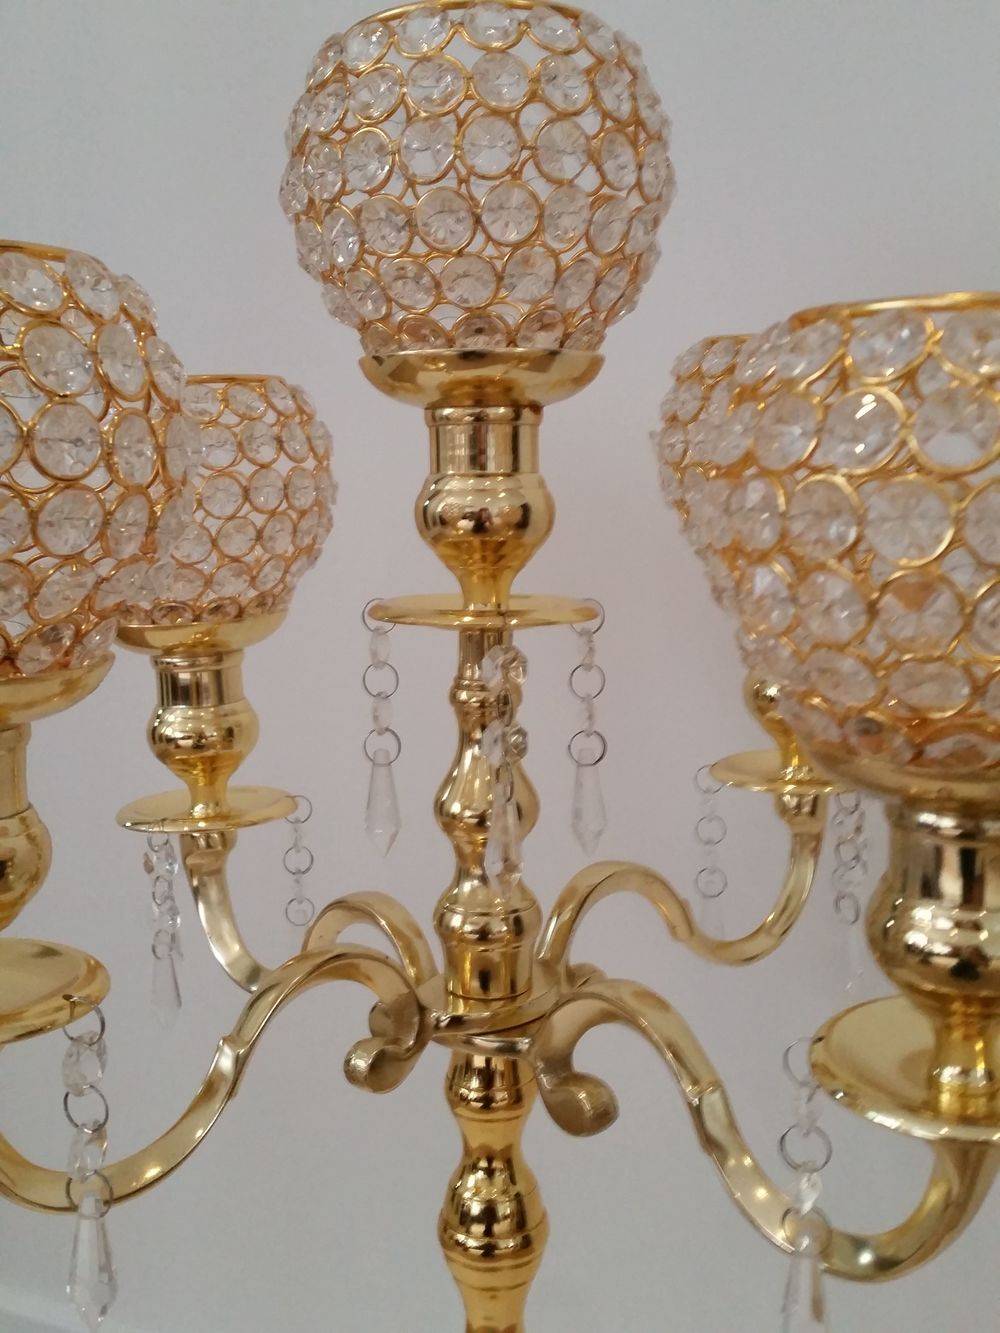 Gold 75cm Crystal Globe Candelabras with crystals5.jpg